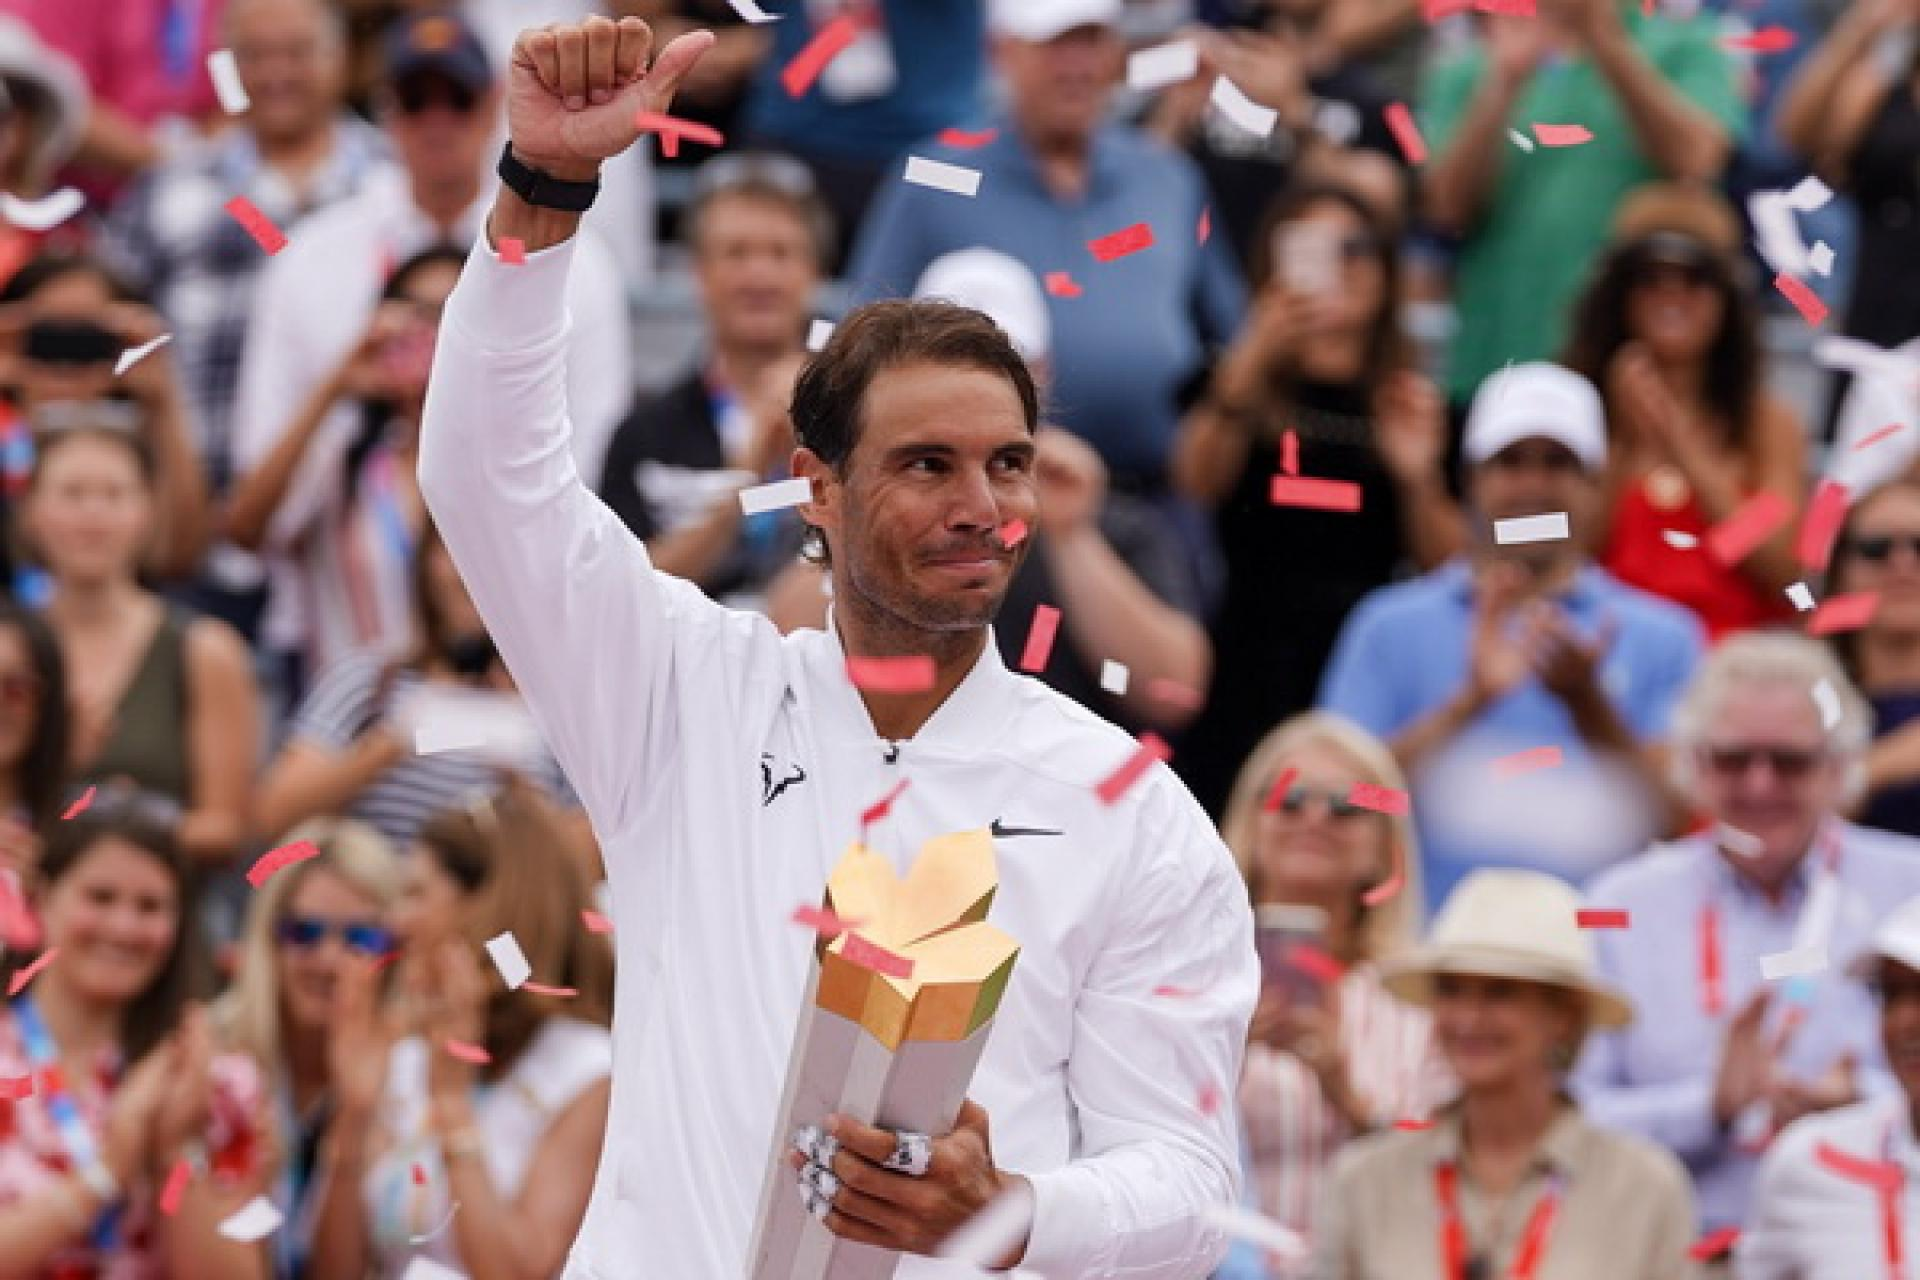 Rafael Nadal moves ahead of Andre Agassi on exclusive ranking list